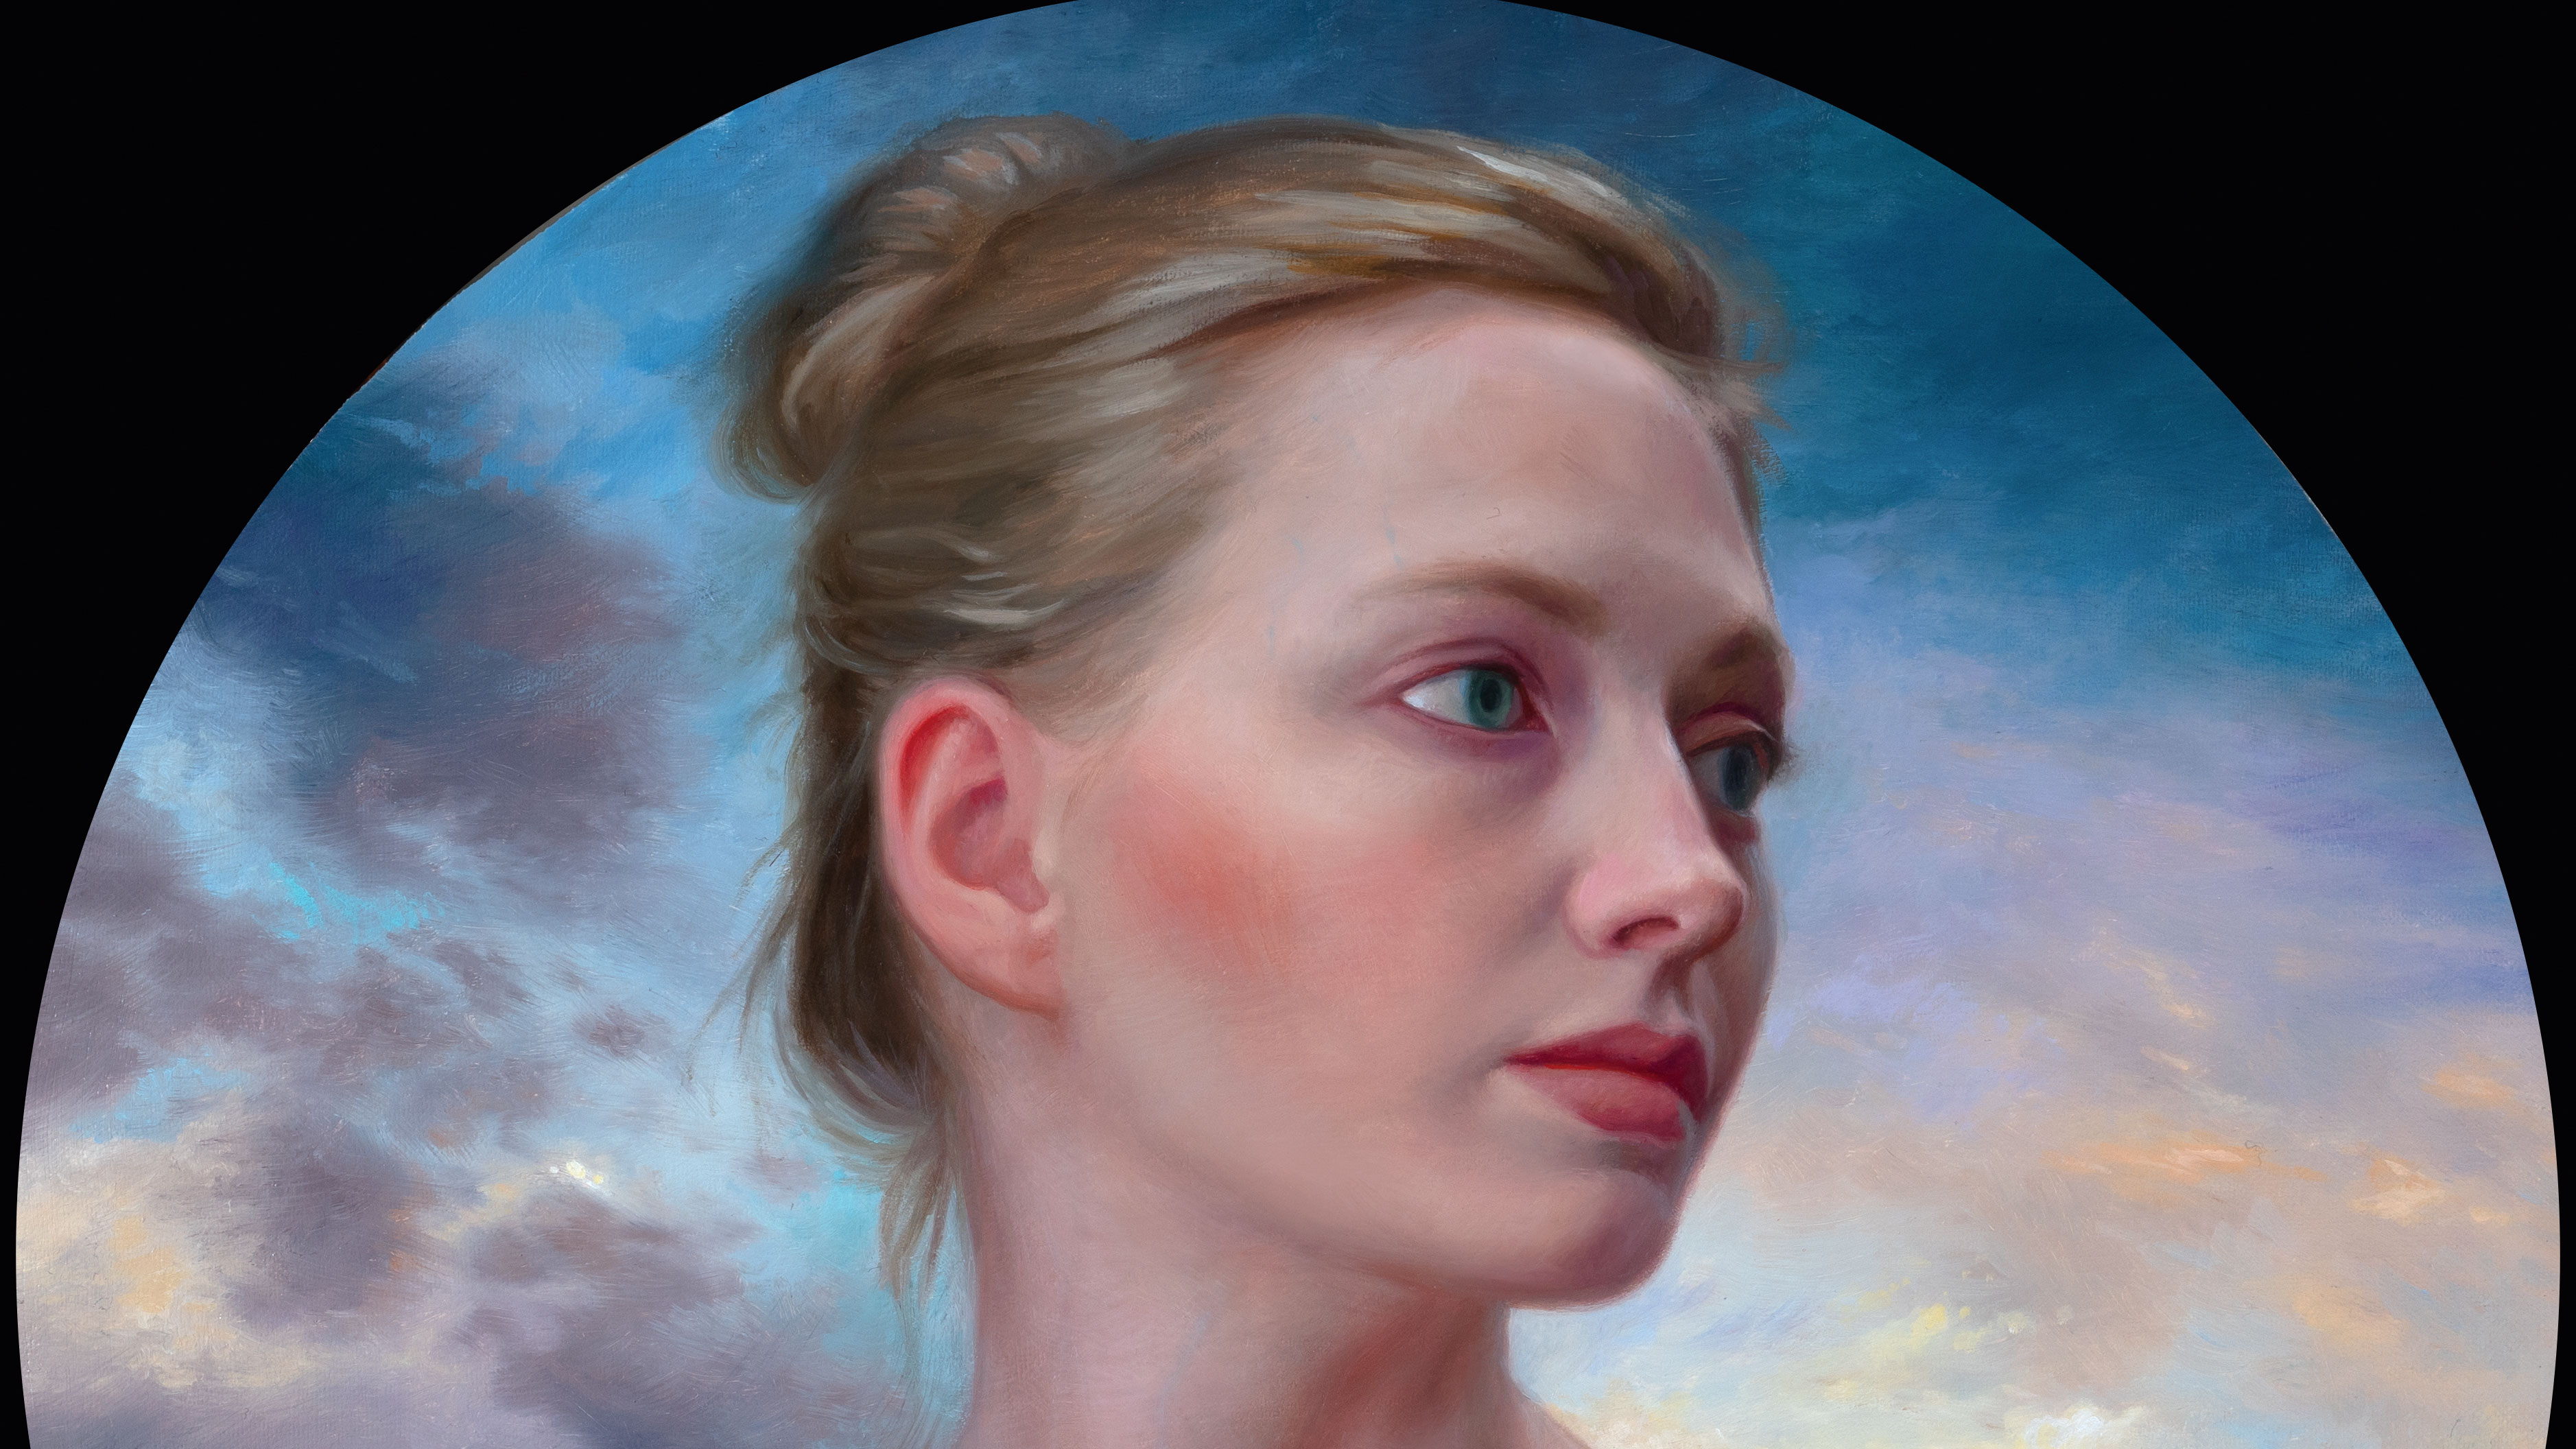 Tackle portrait painting with oils